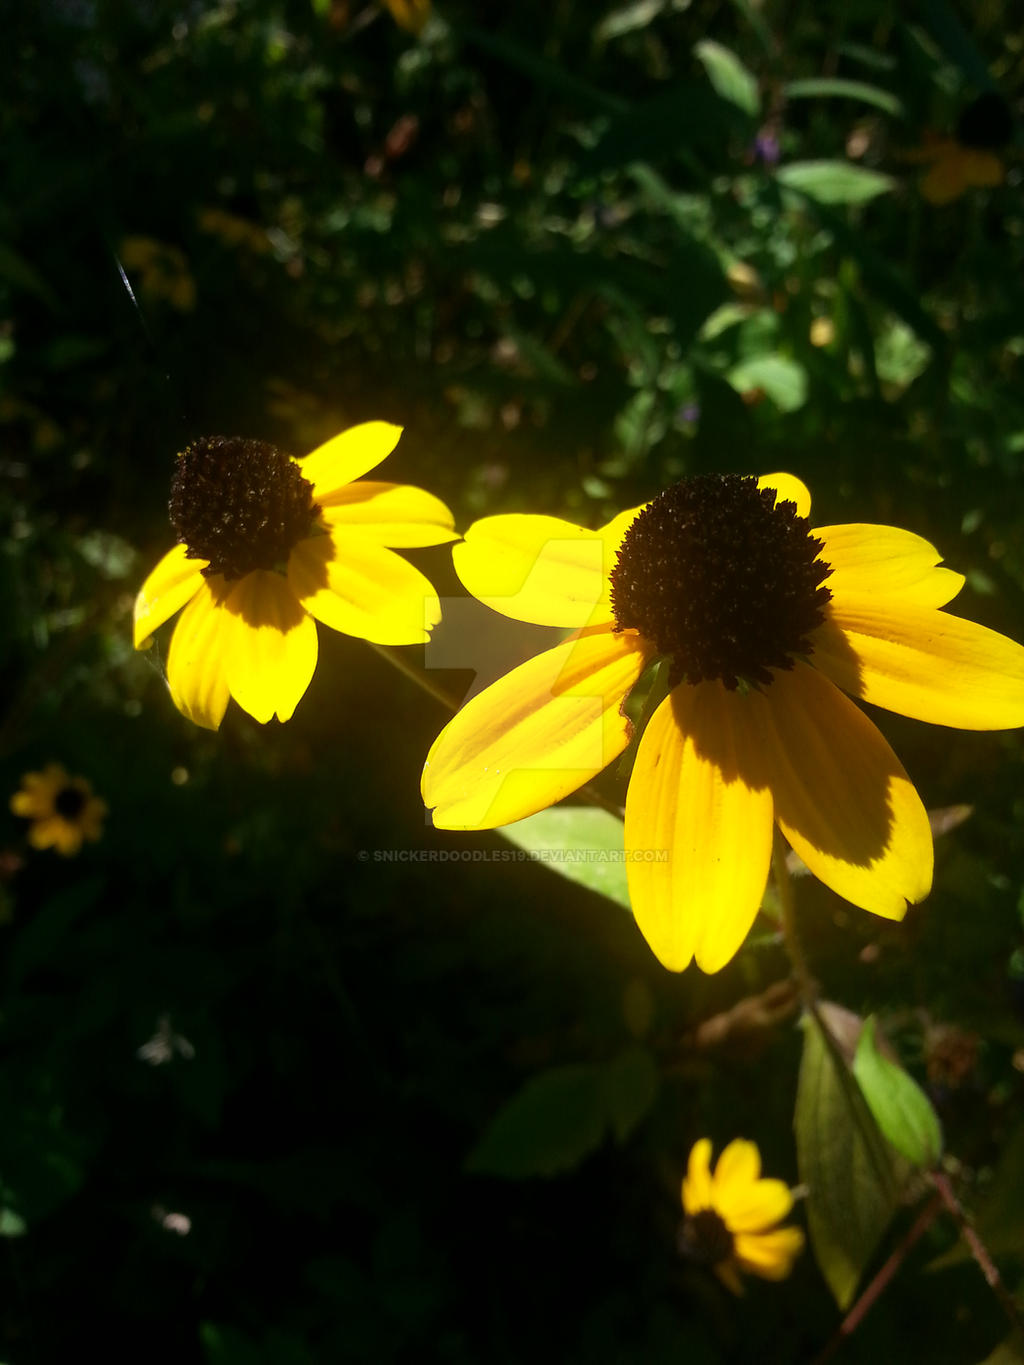 Yellow Coneflower By Snickerdoodles19 On Deviantart